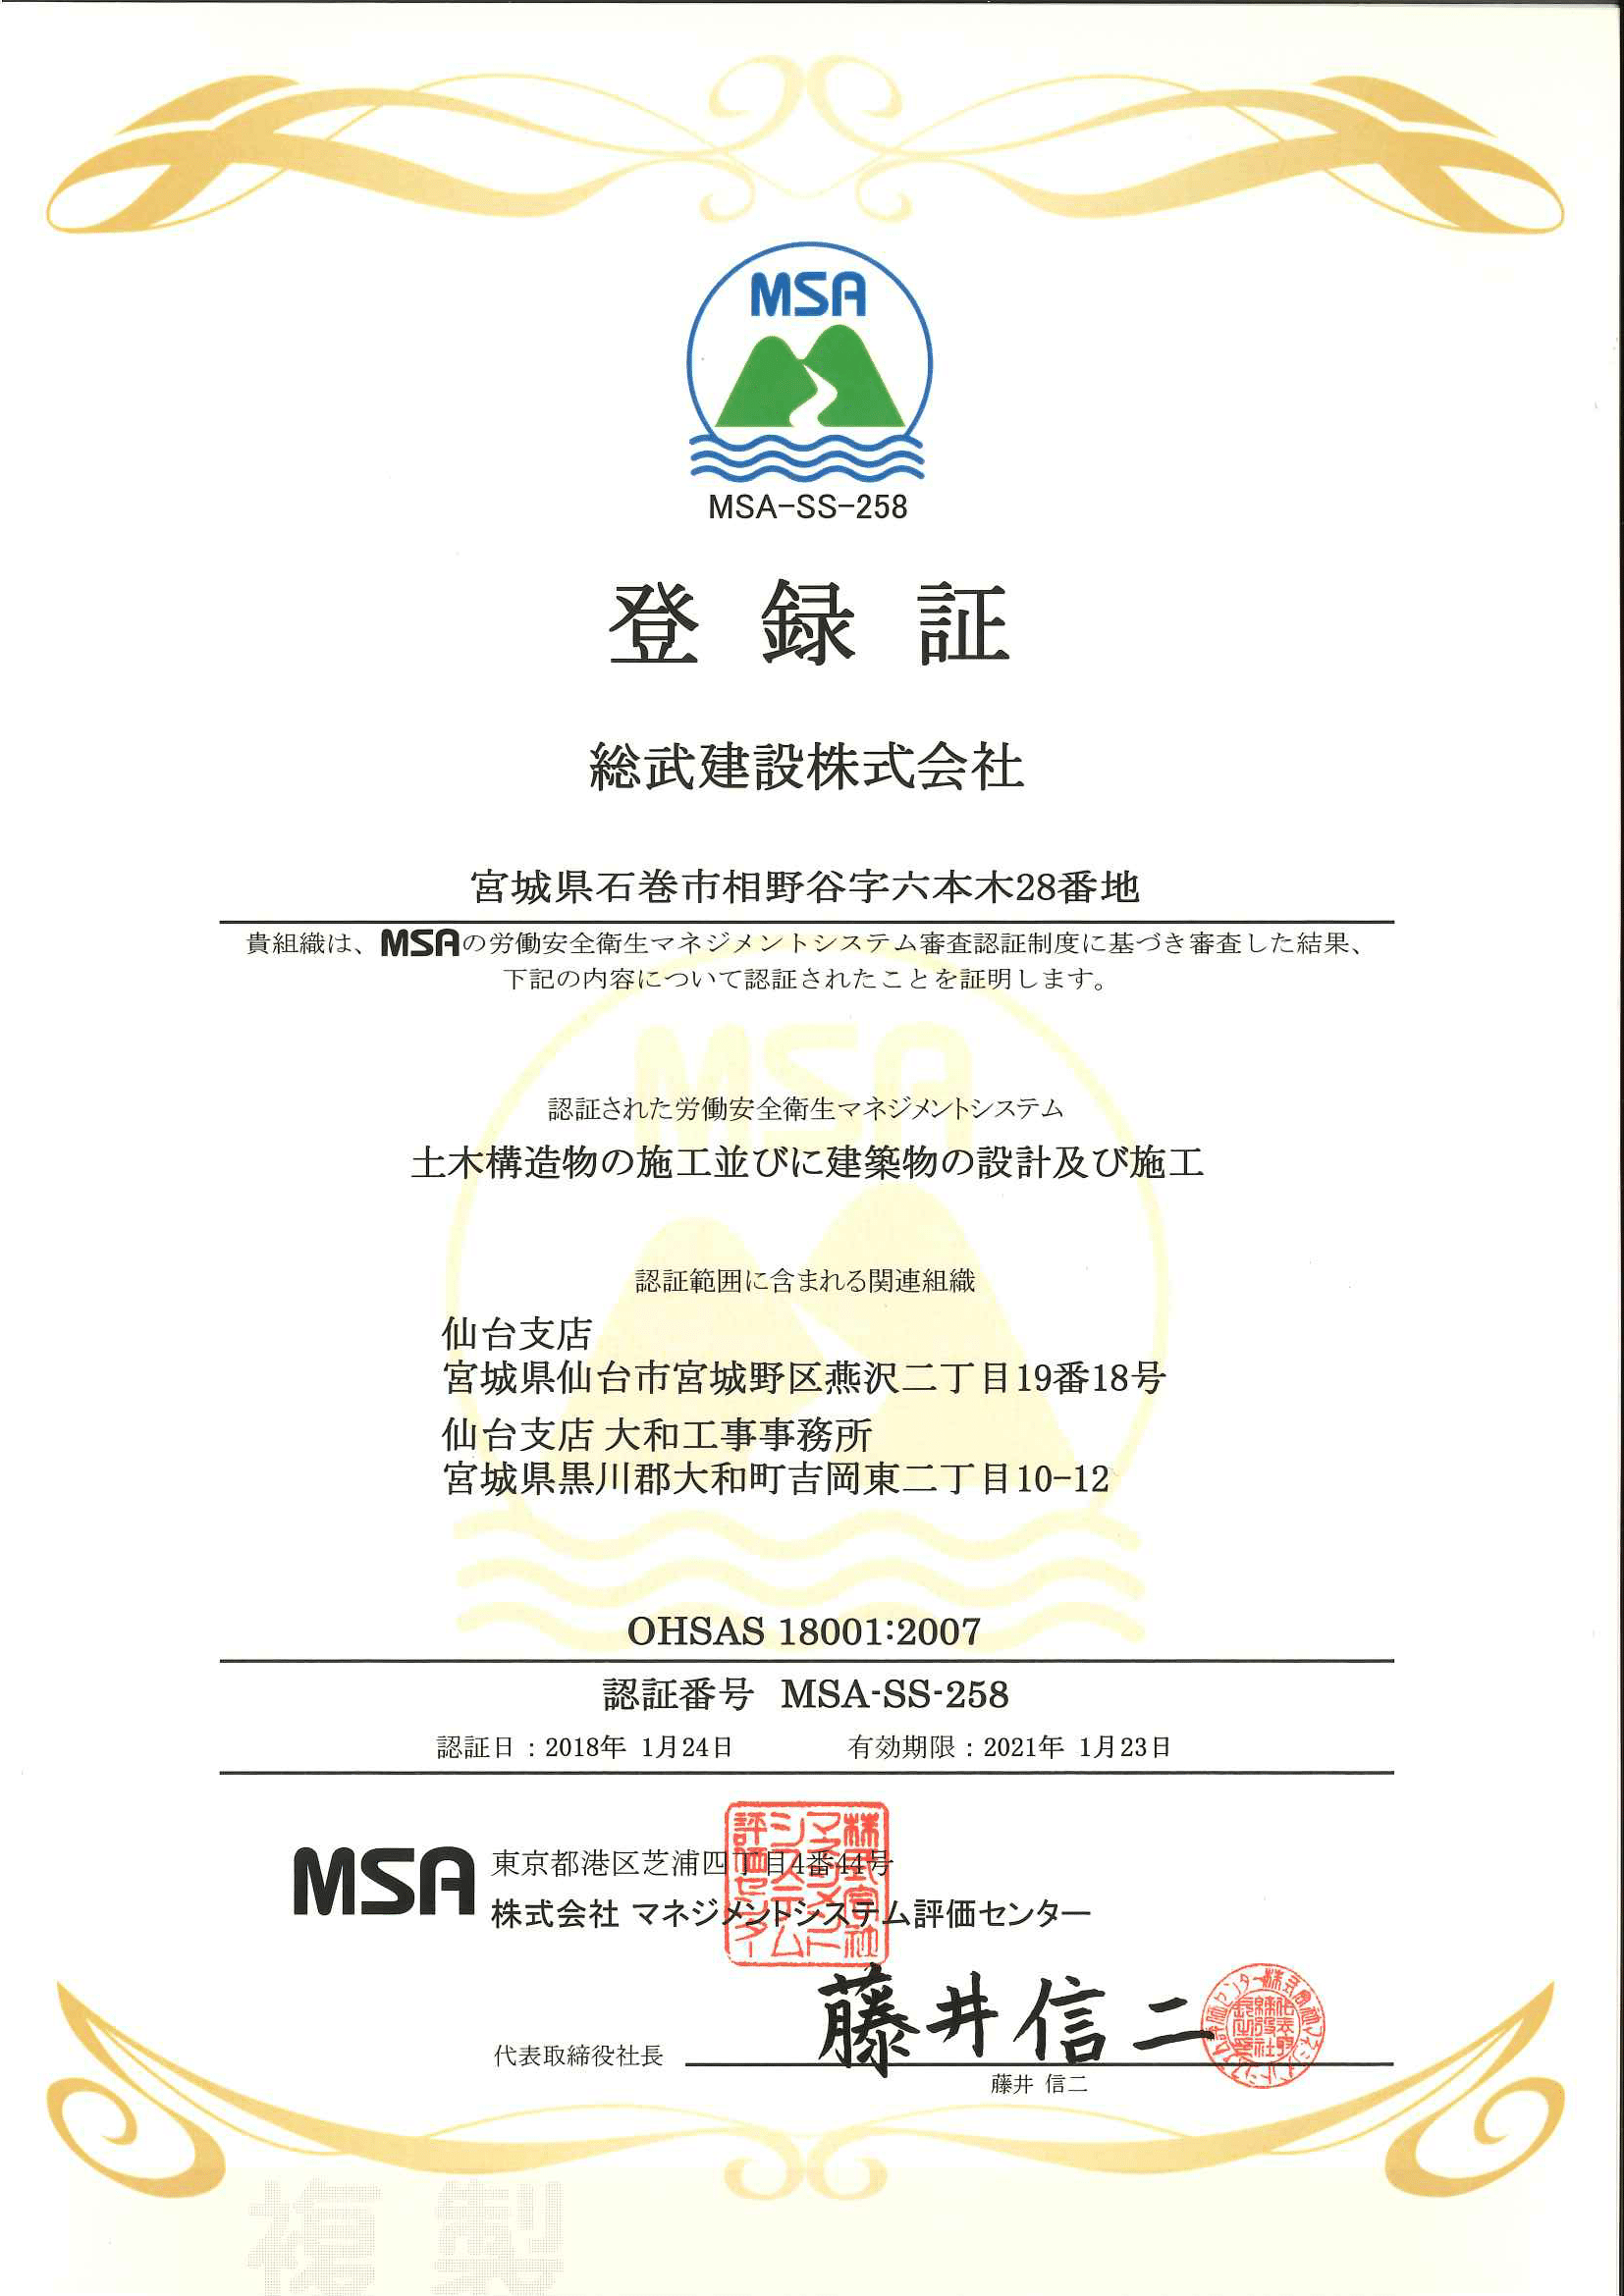 ohsas18001-2007-1 2.png